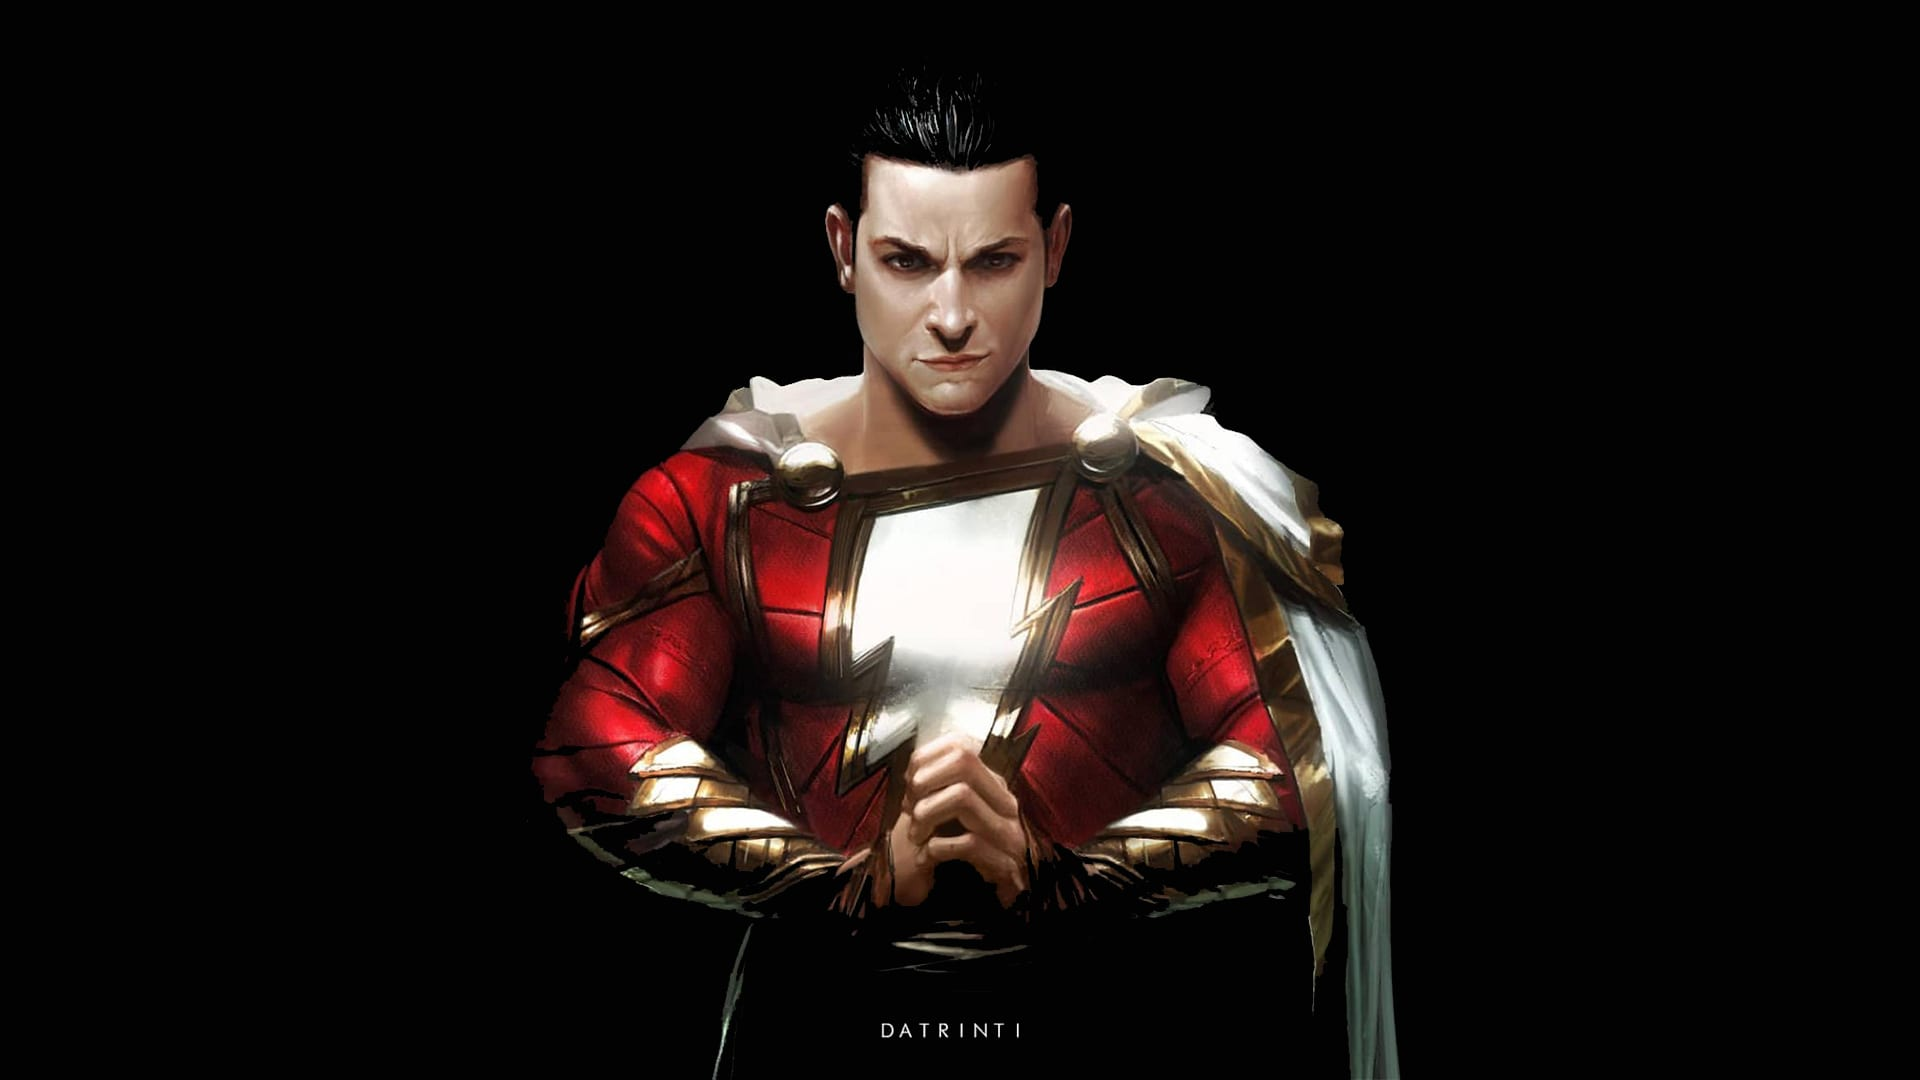 Best Shazam Superhero Artwork 4133 Wallpapers and Stock 1920x1080